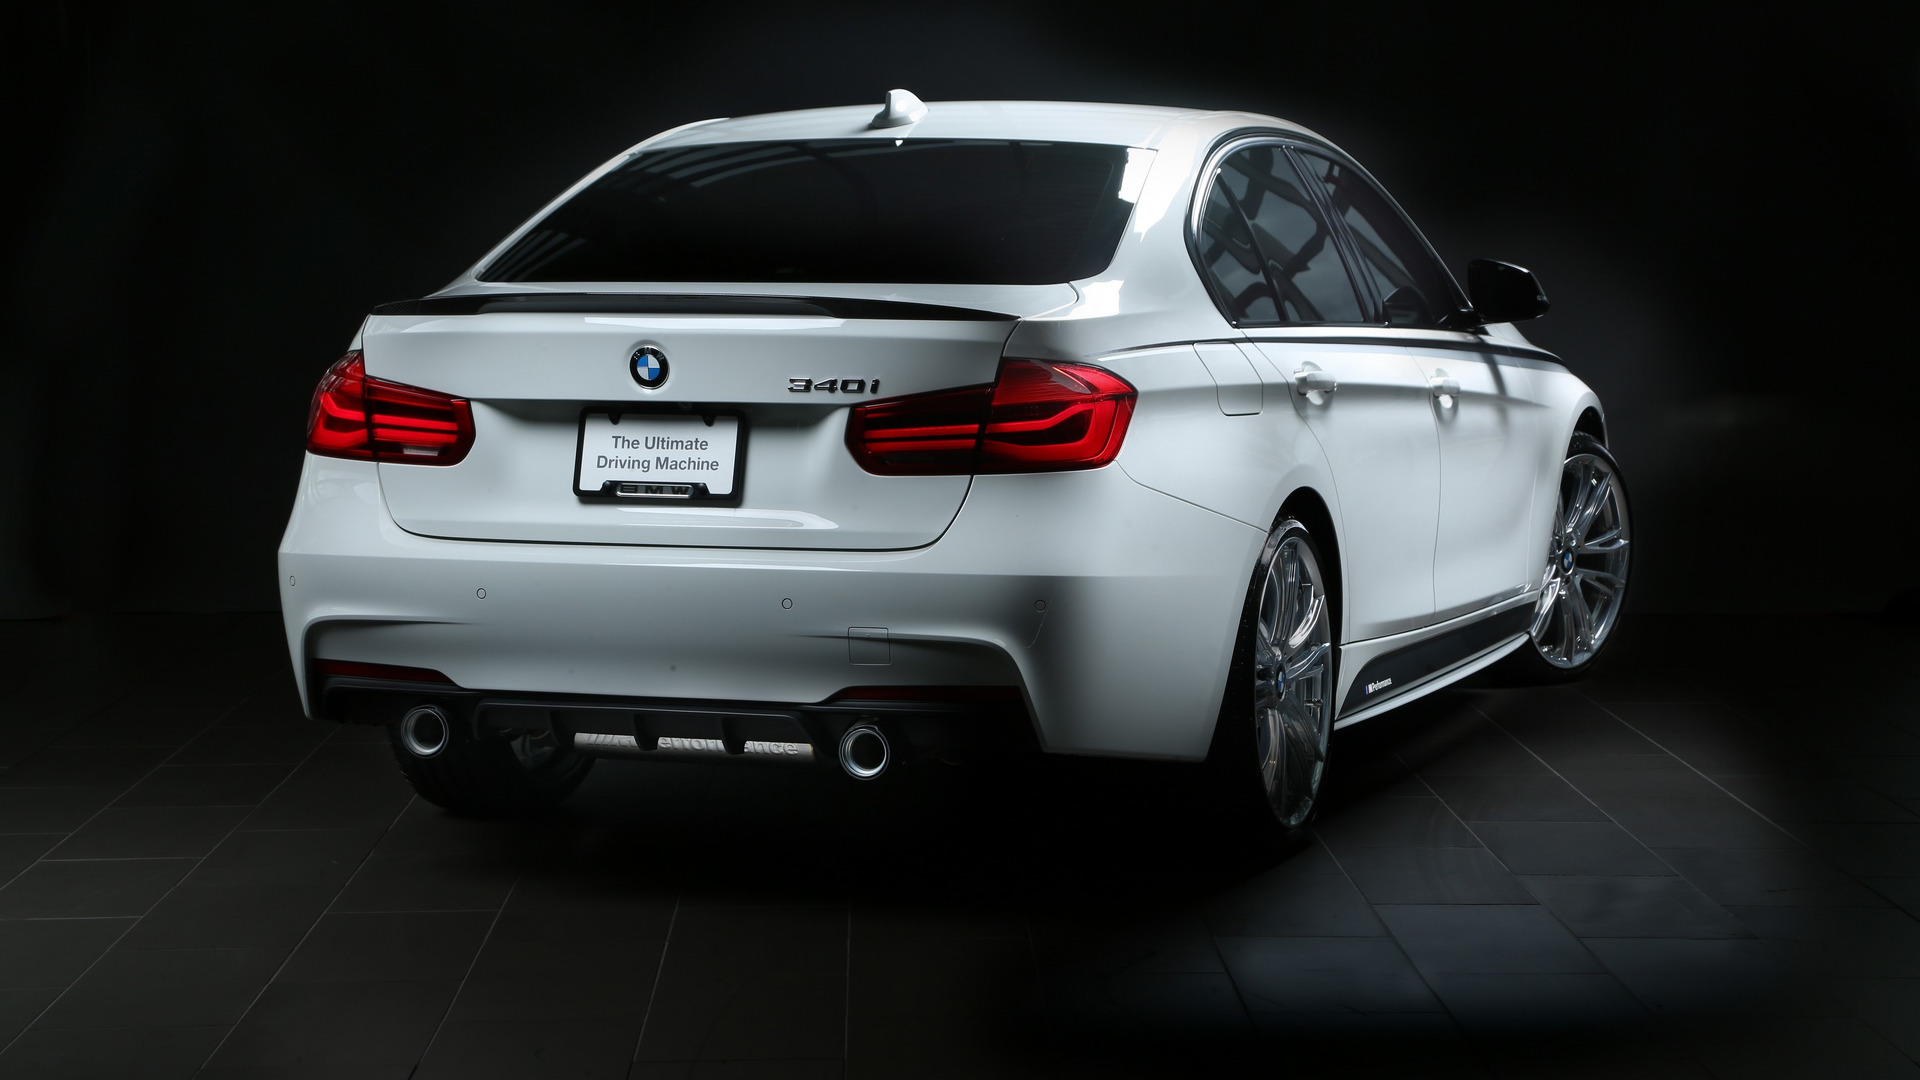 Latest Bmw M Parts To Debut At Sema New Aero Kit For M3